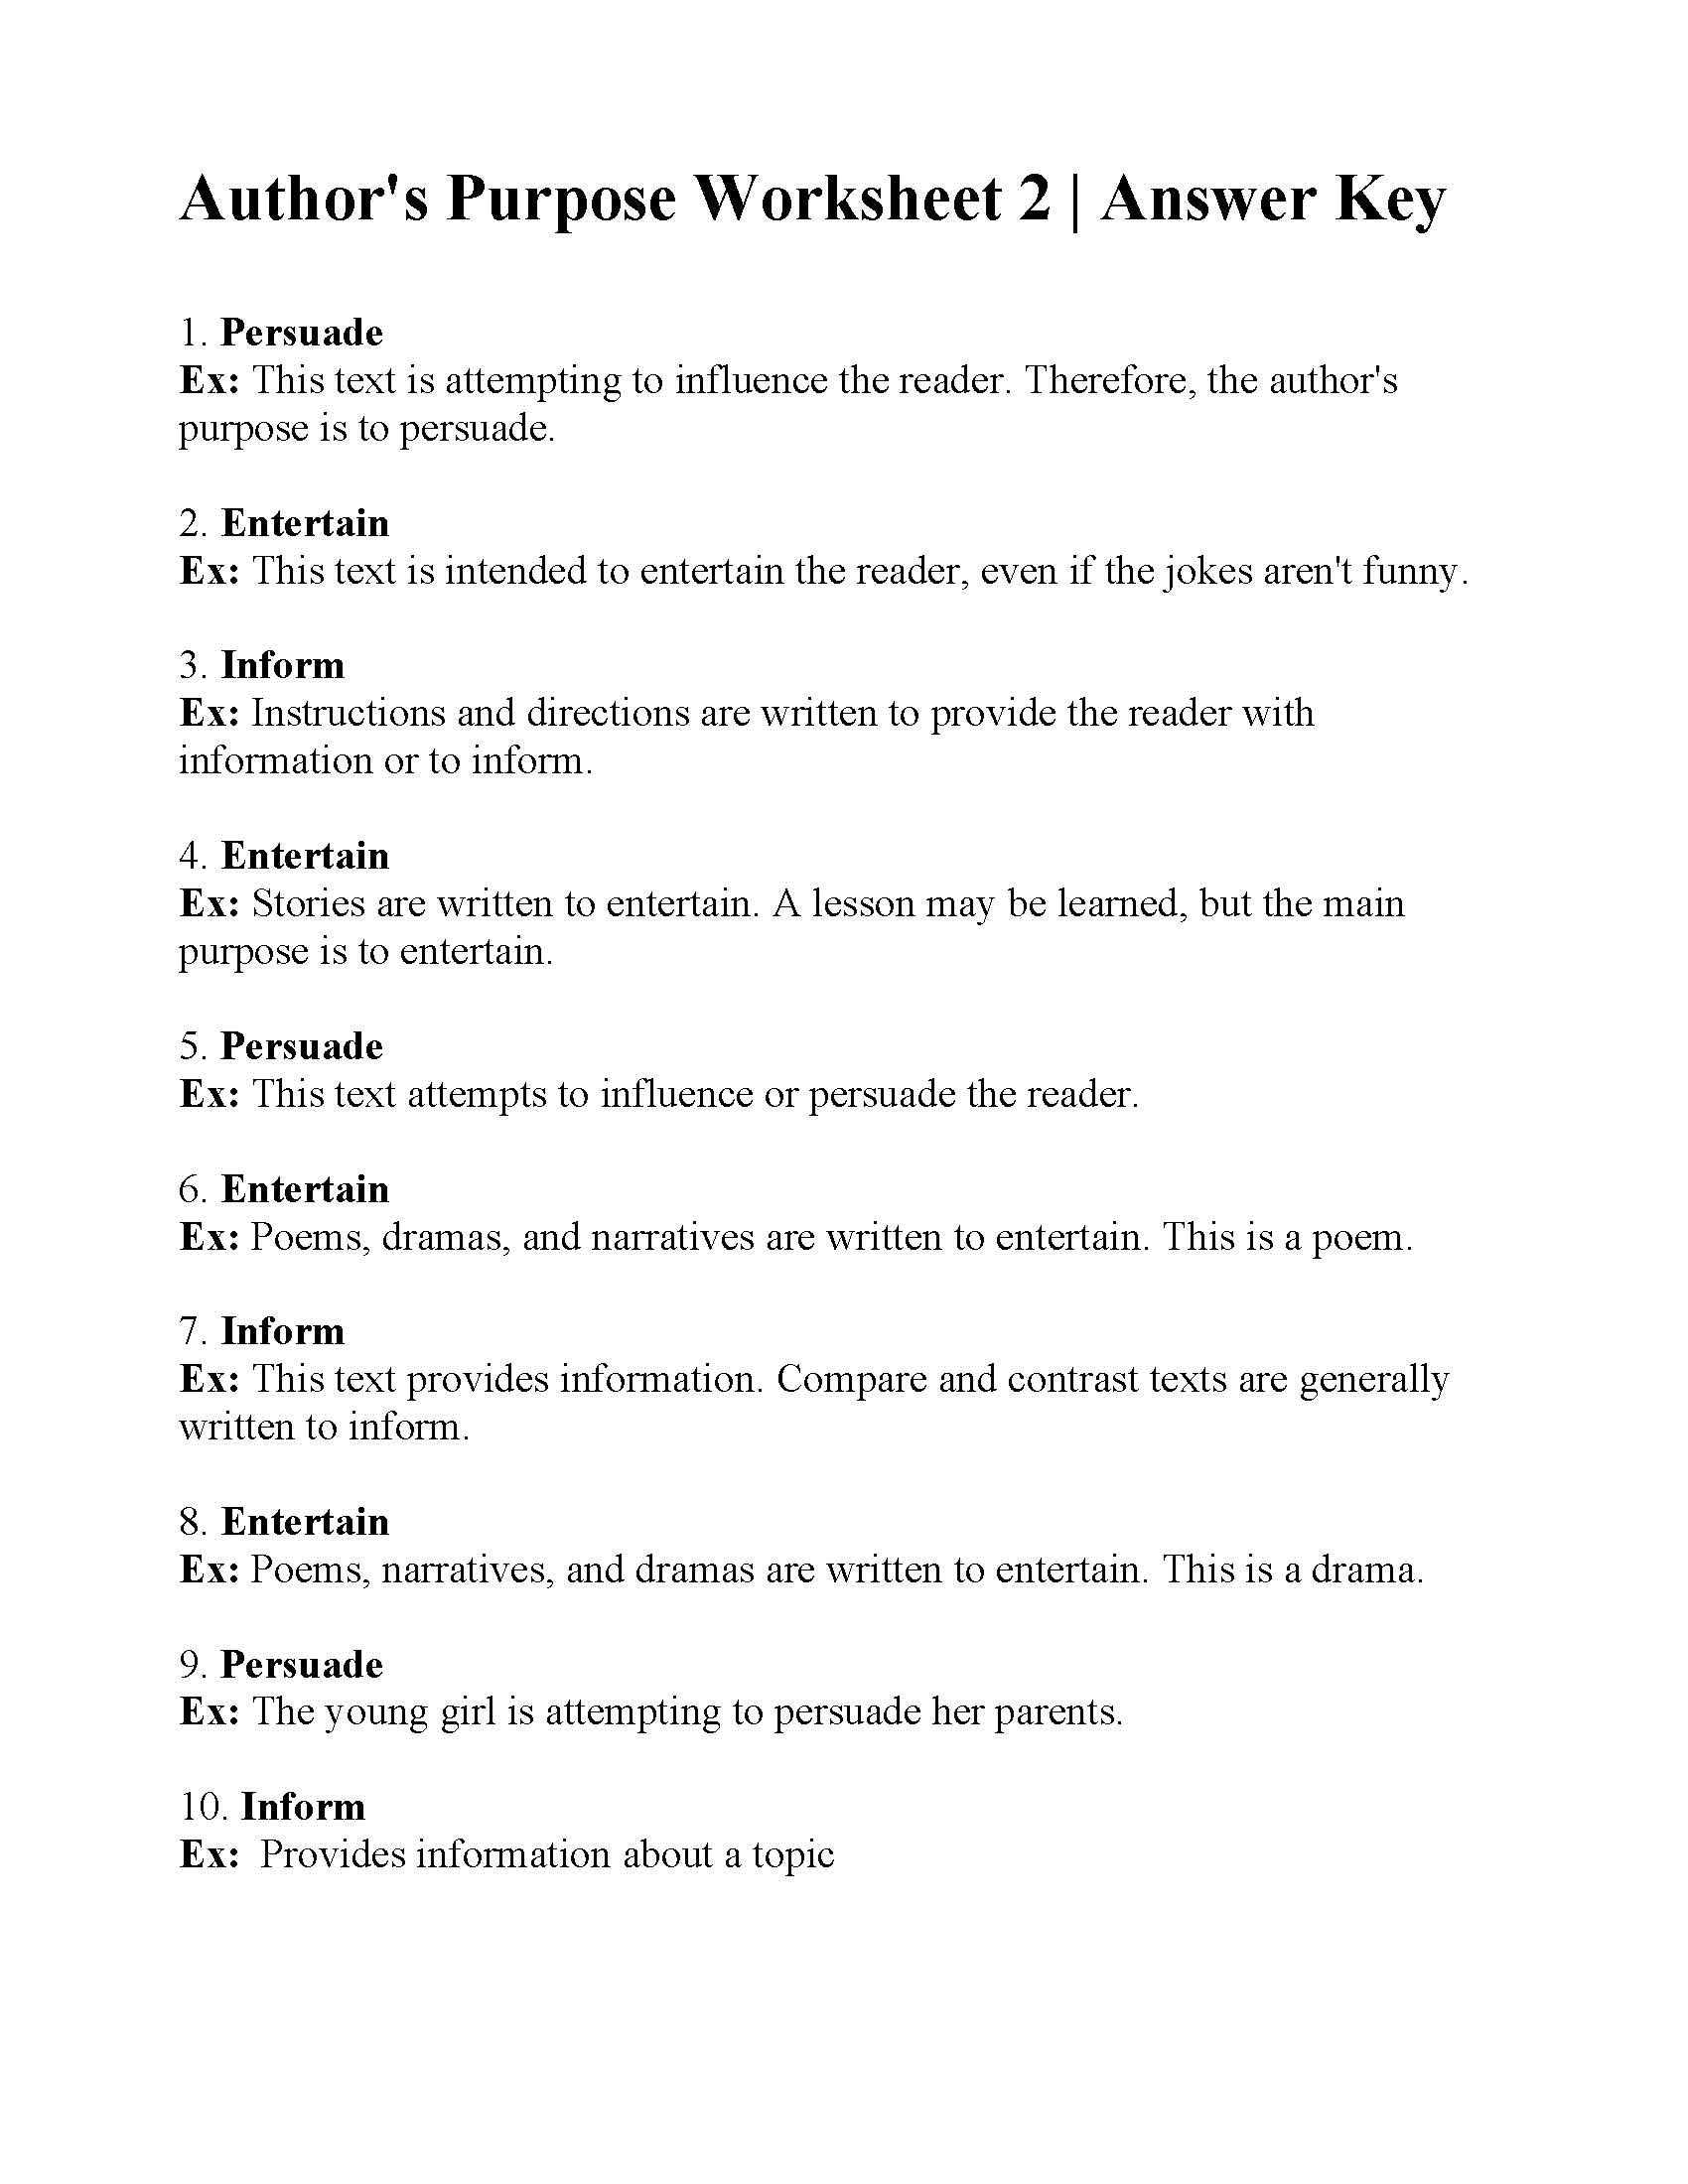 This Is The Answer Key For The Author S Purpose Worksheet 2 Author S Purpose Worksheet Authors Purpose Worksheet Template